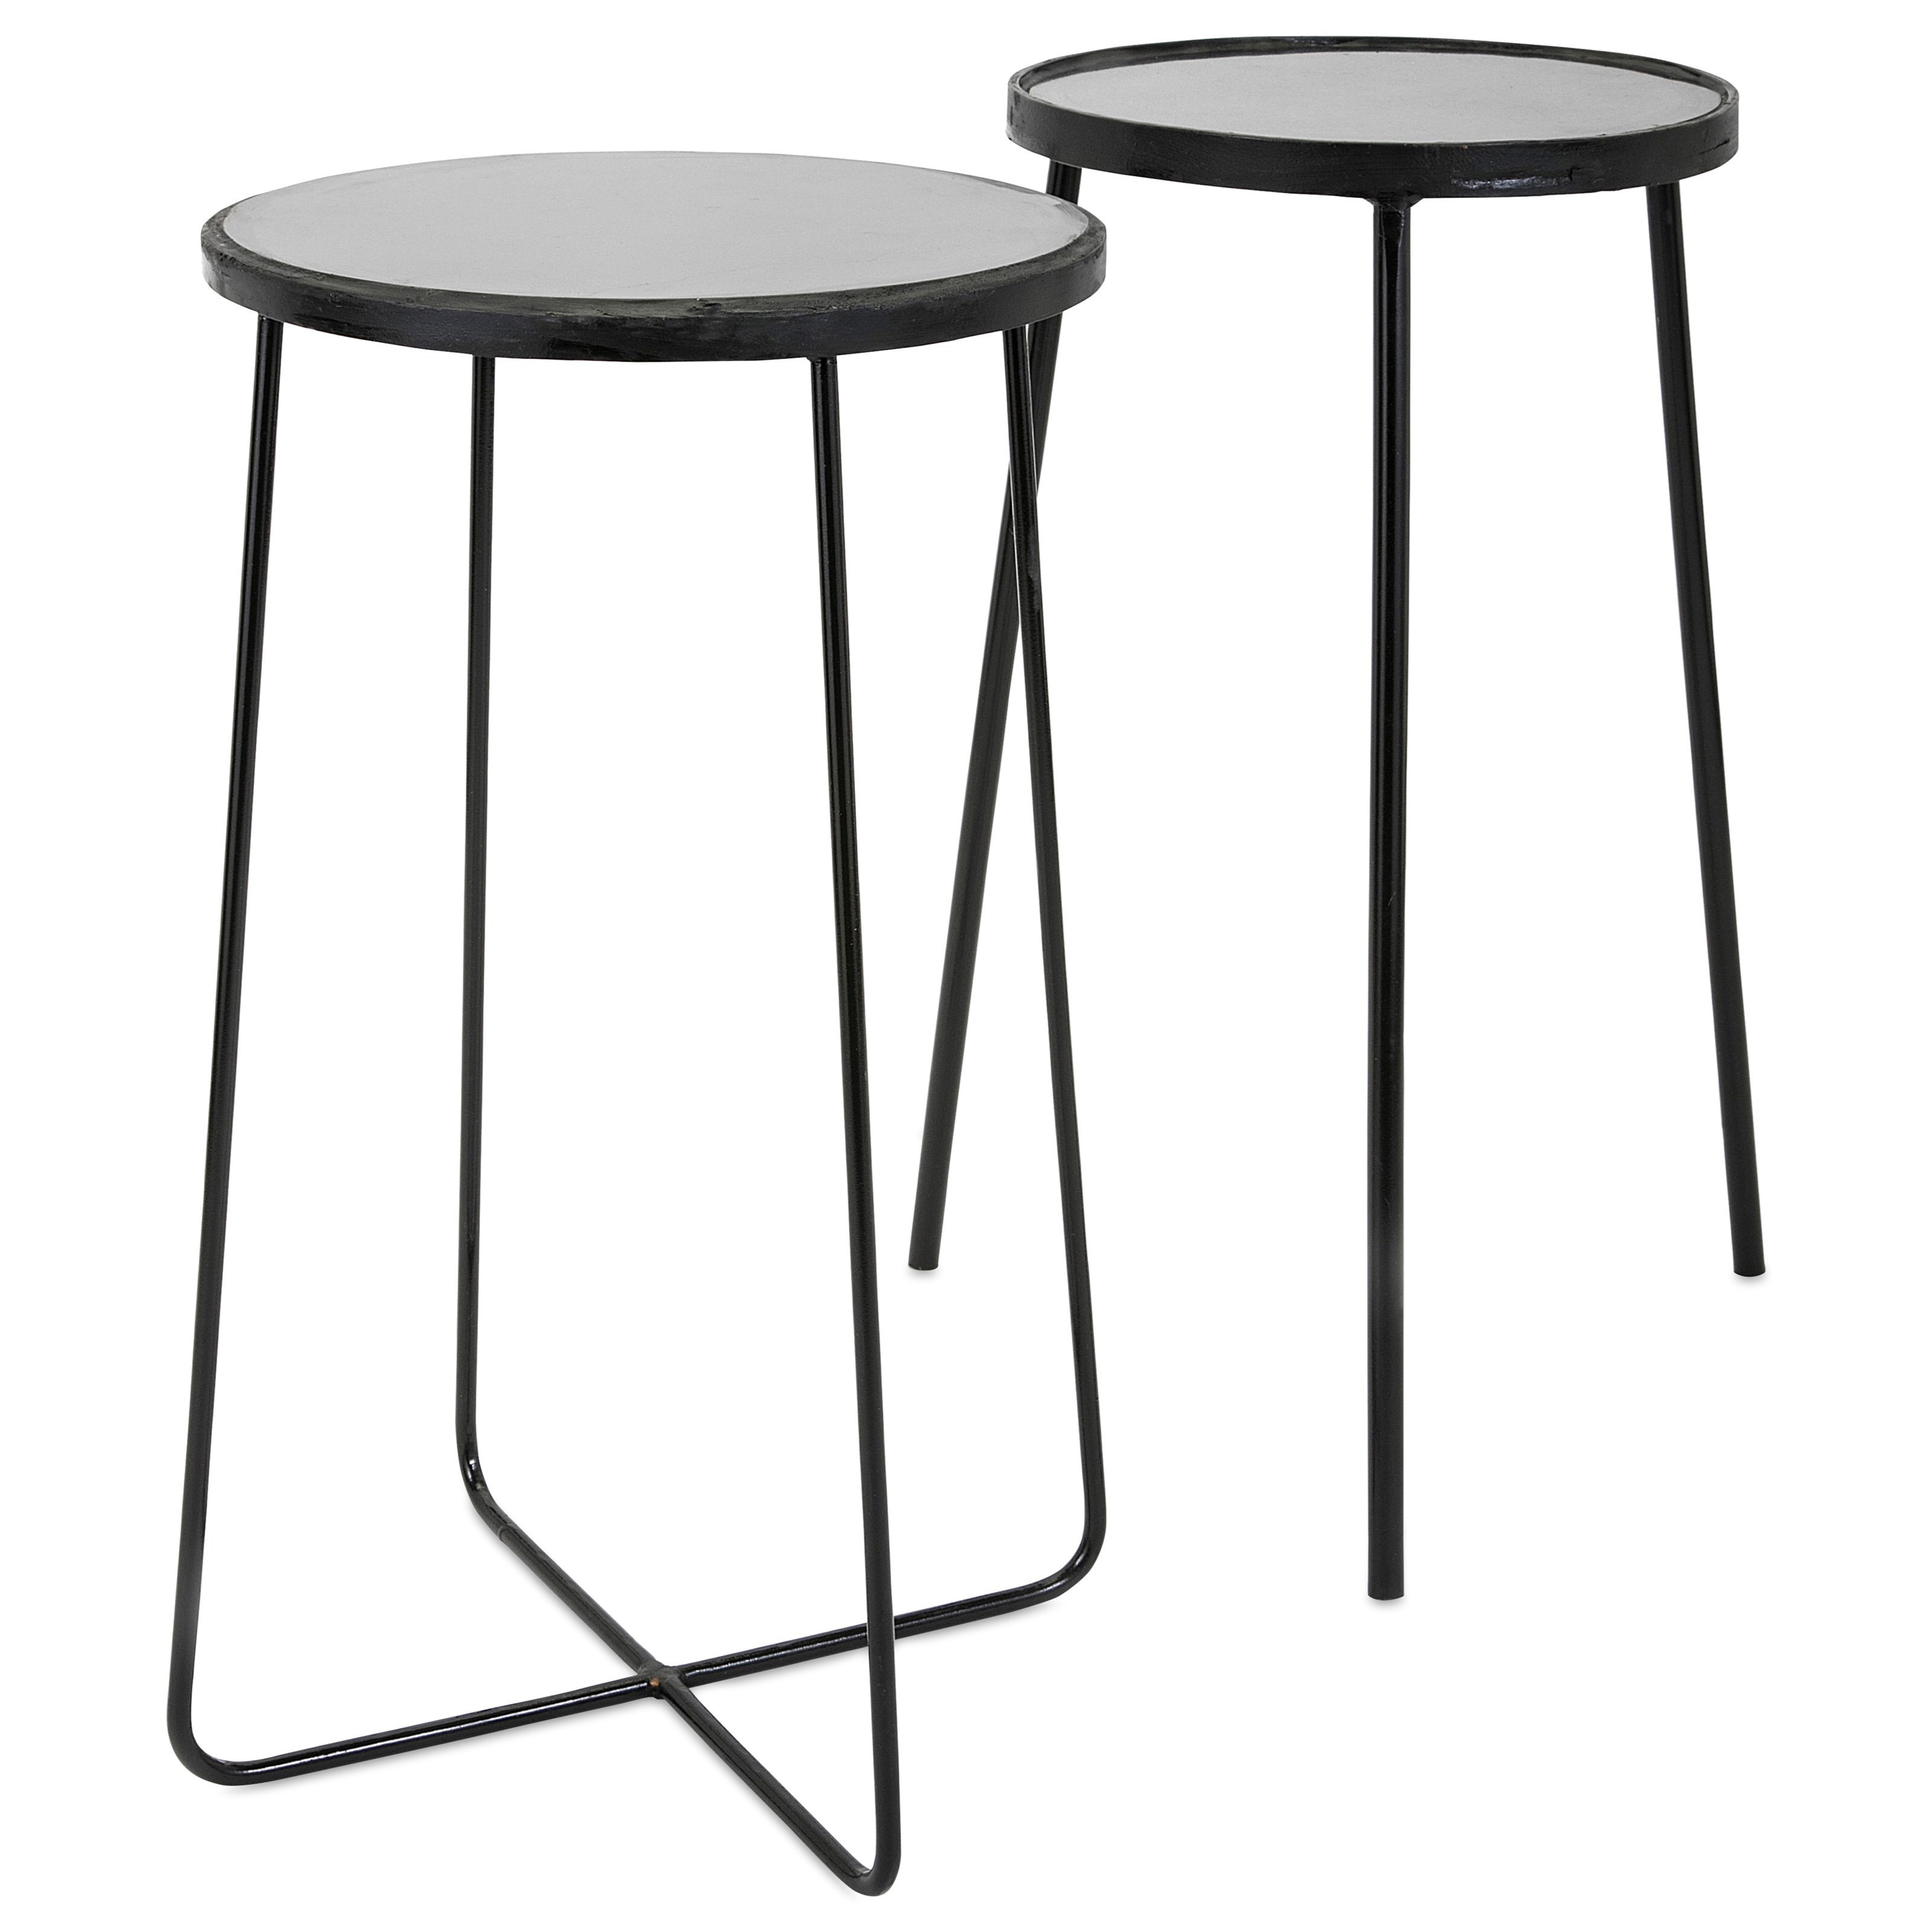 Berke Iron and Marble Tables - Set of 2